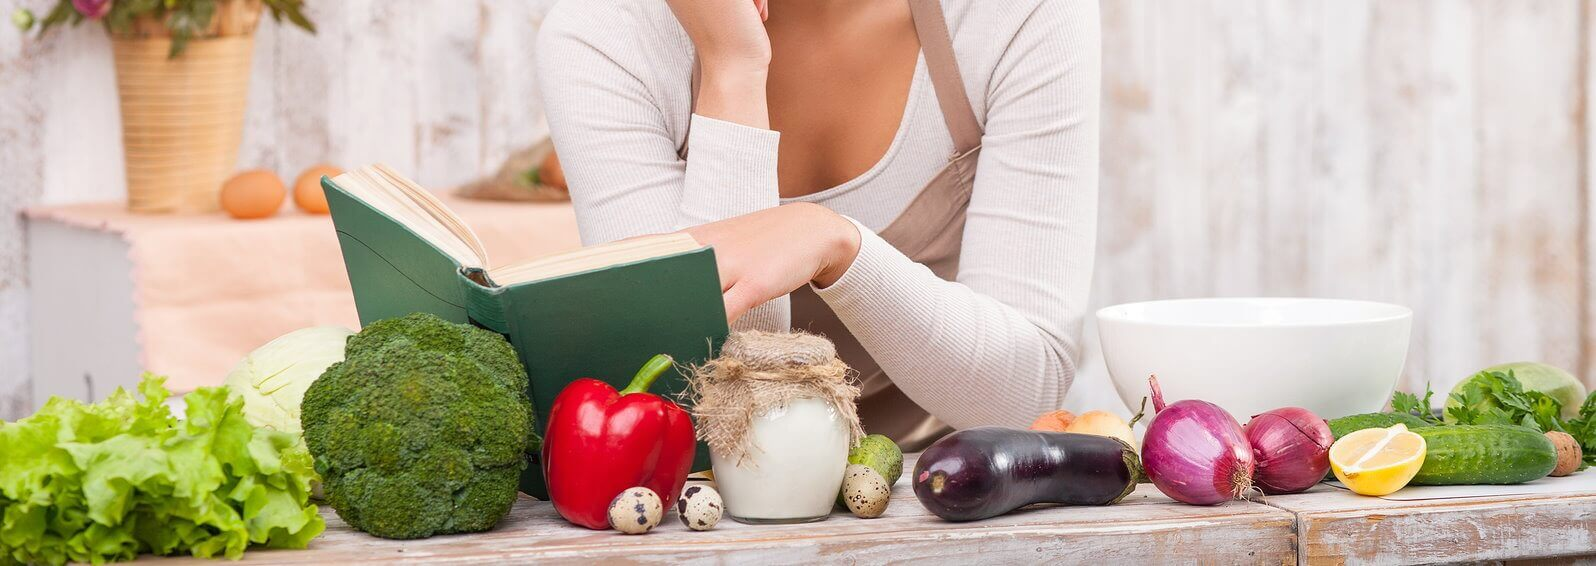 5 reasons you don't eat well and 8 tips for meal planning